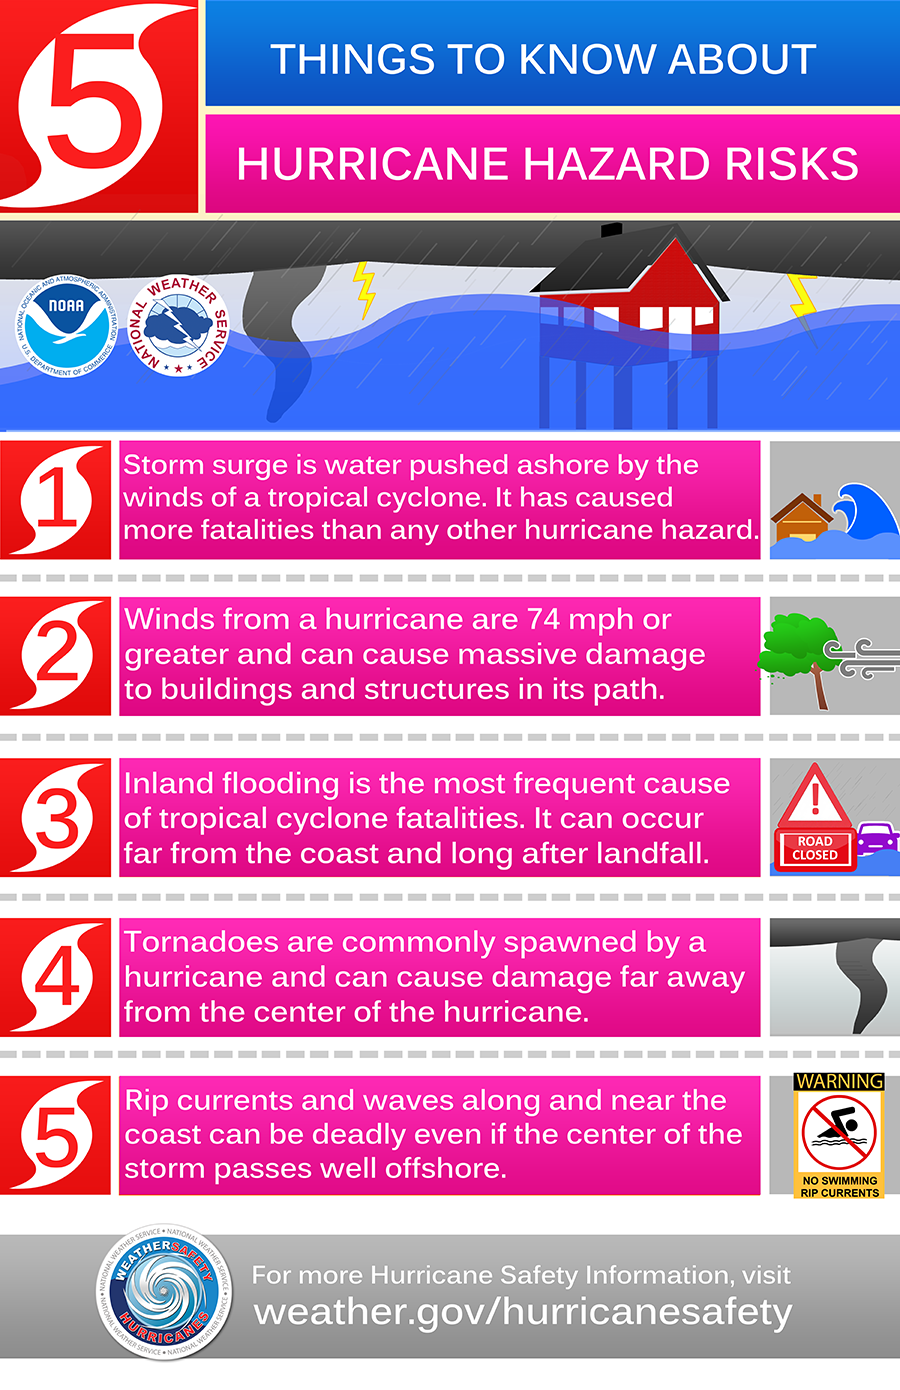 Things to know about hurricane hazard risks